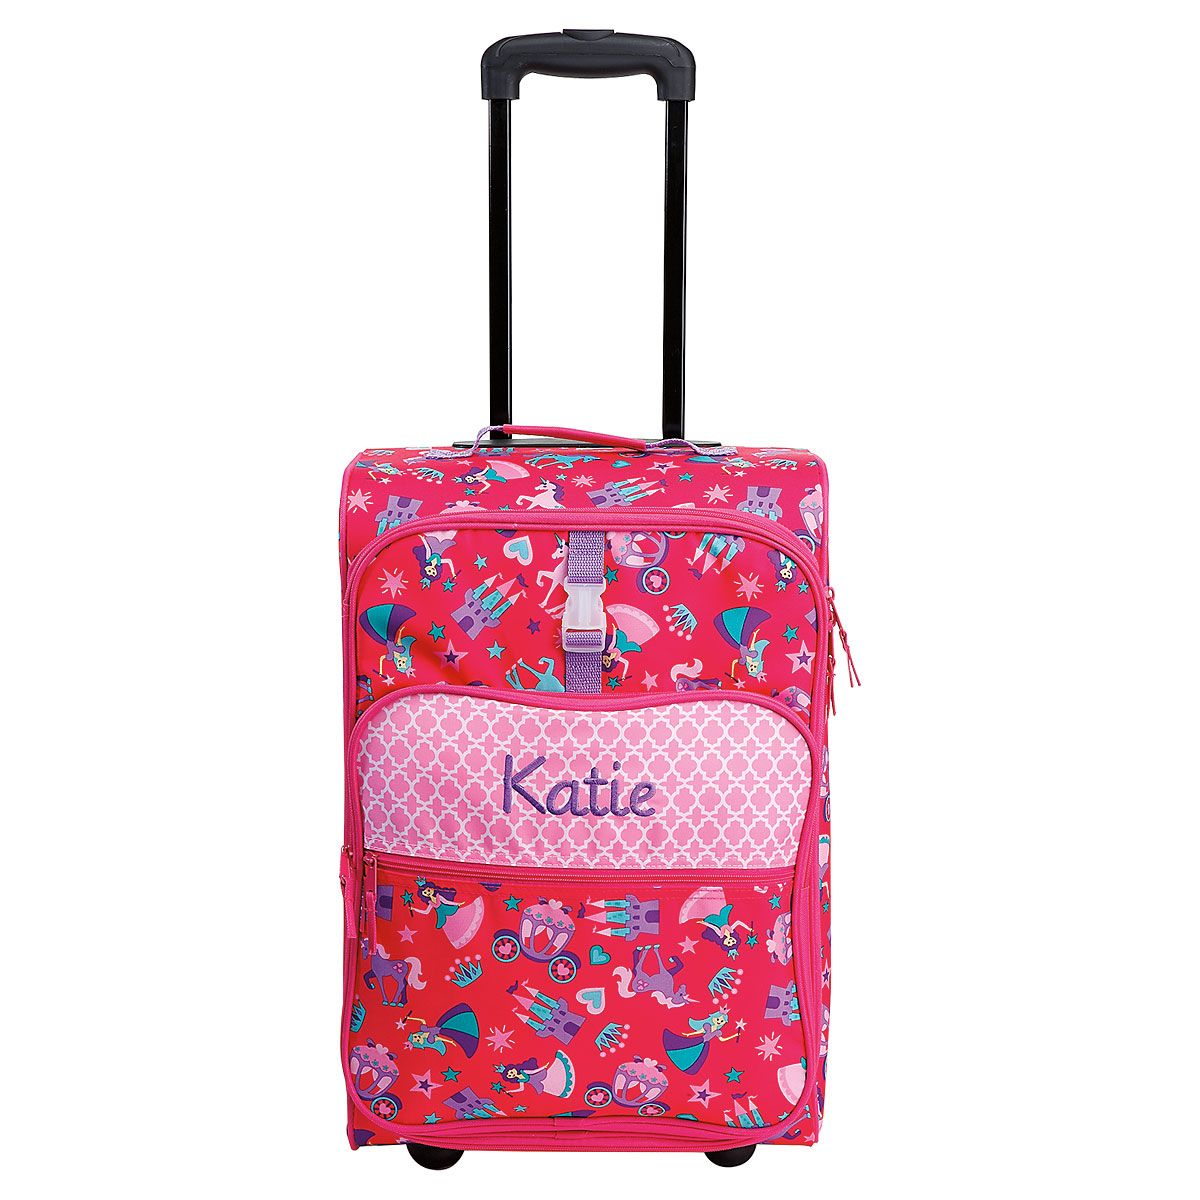 "All-Over Princess Print 22"" Rolling Luggage by Stephen Joseph®"